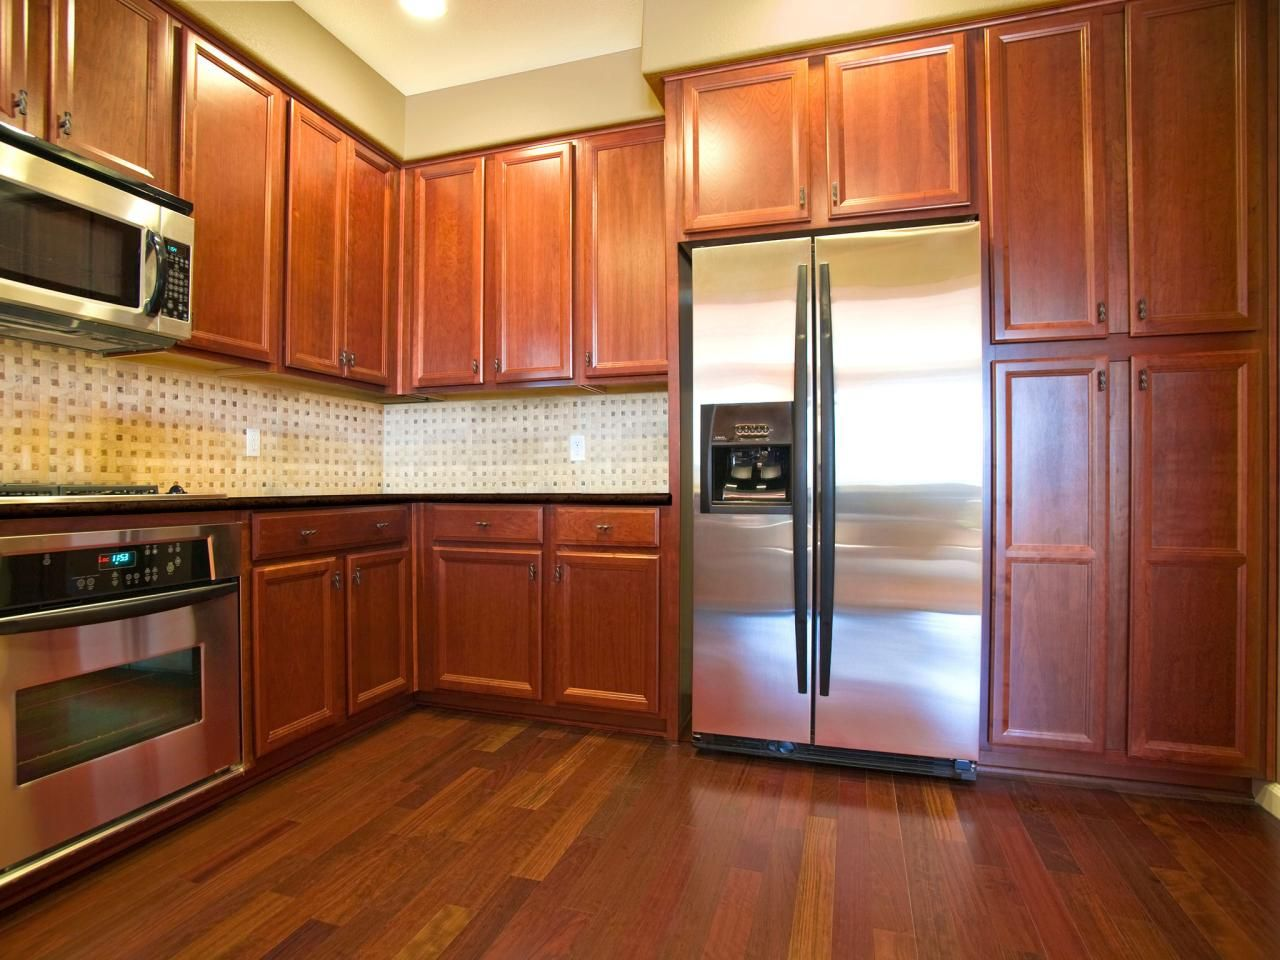 Wide View Of Oak Kitchen Cabinets A Wood Floor Stainless Kitchen. Kitchens With Pine Cabinets. Rustic Kitchen Cabinets Rustic Kitchens and Pine Kitchen Cabinets. Kitchen with Black Granite and Natural Pine Cabinets Buscar Con